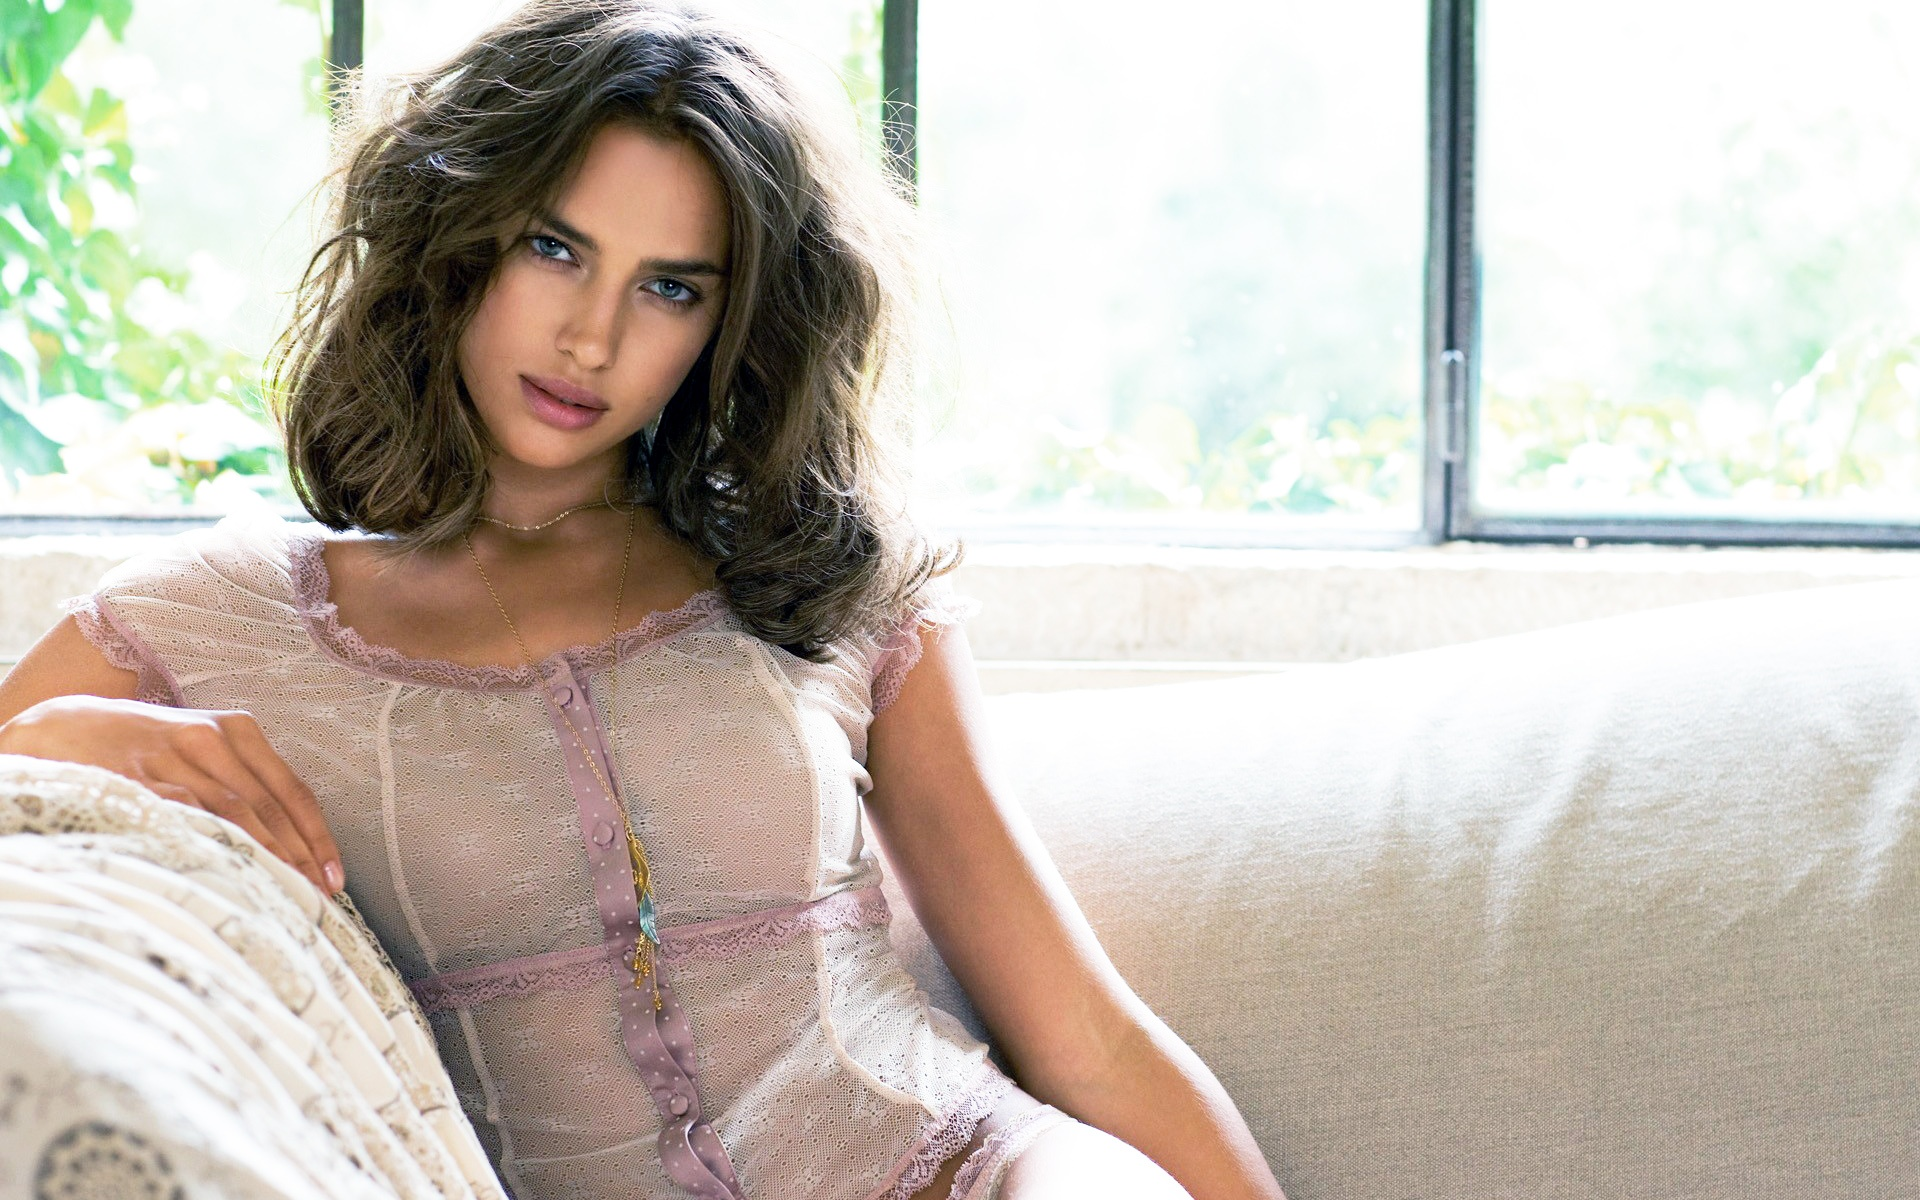 Irina Sheik has become the face of an advertising campaign of the